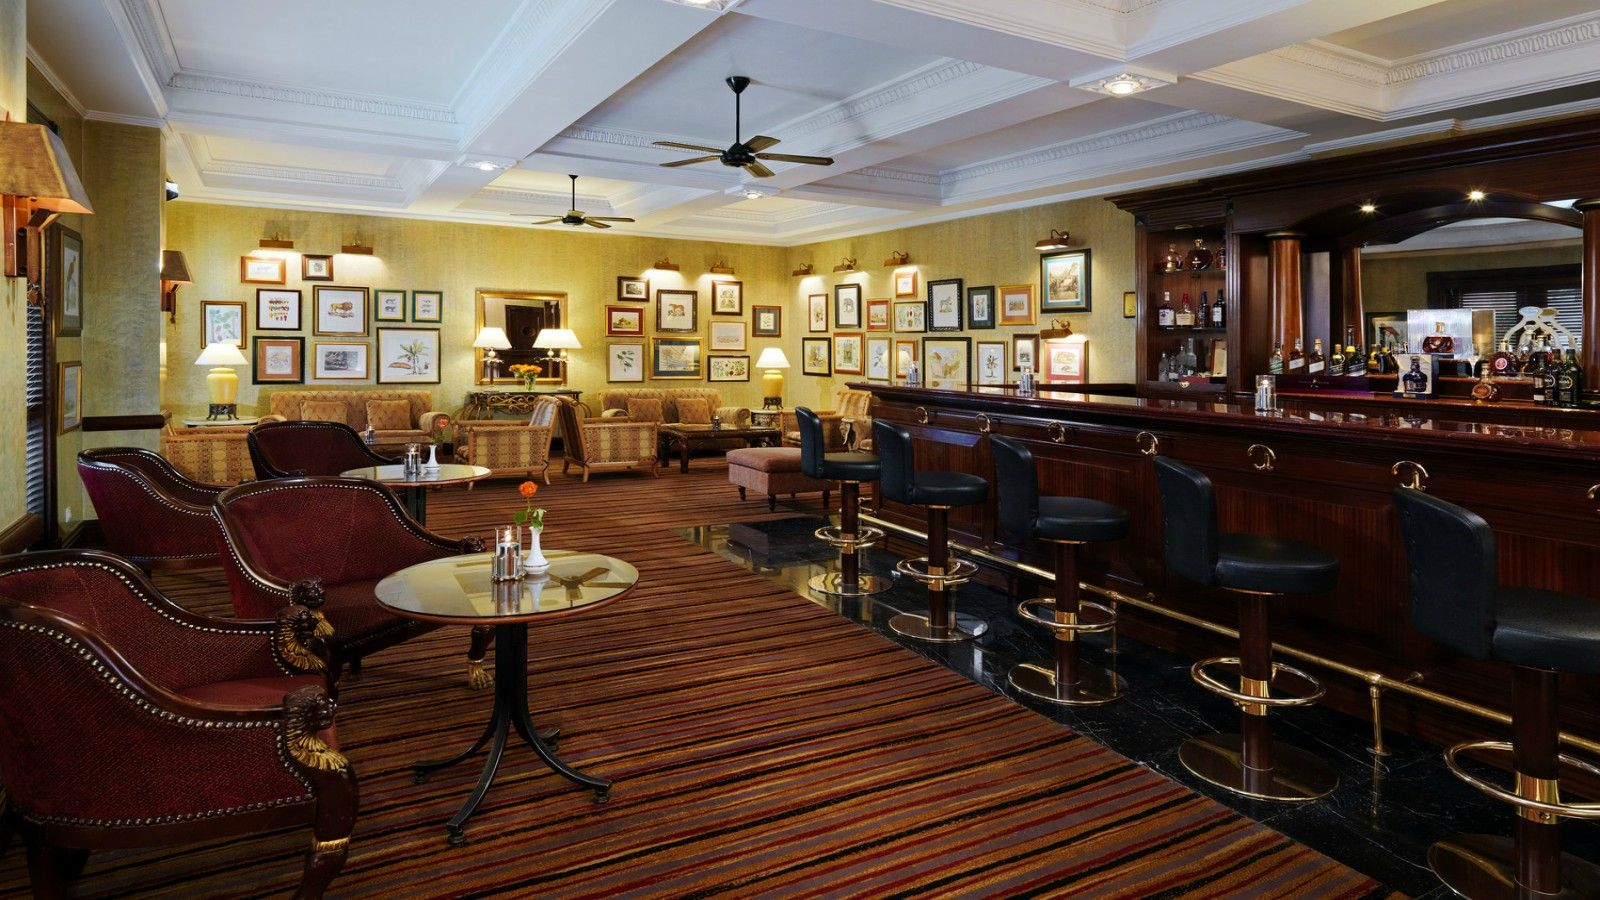 Stanley's bar interior with wooden framed pictures covering the wall